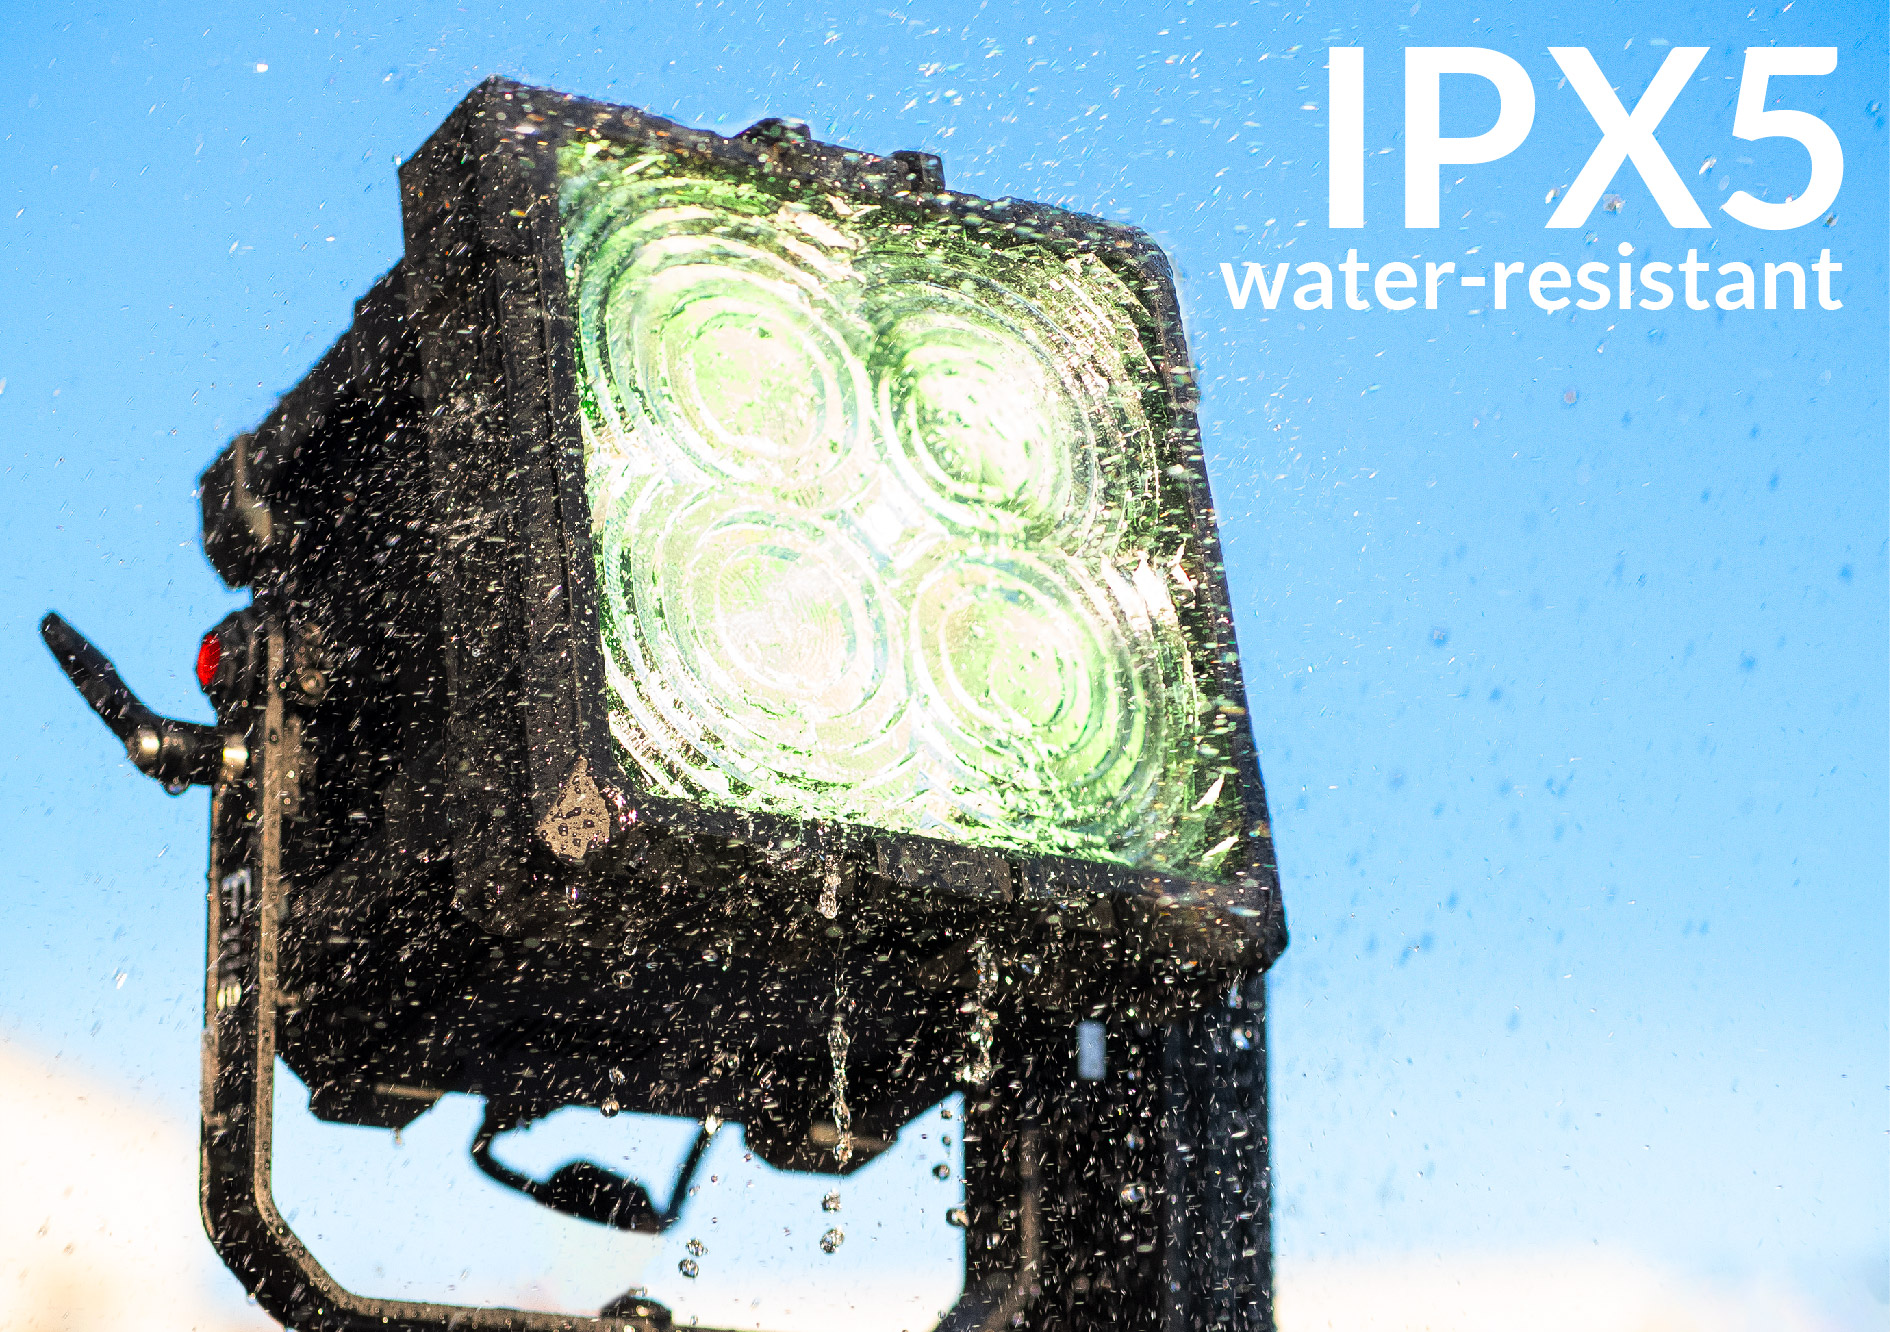 IPX5 water-resistant